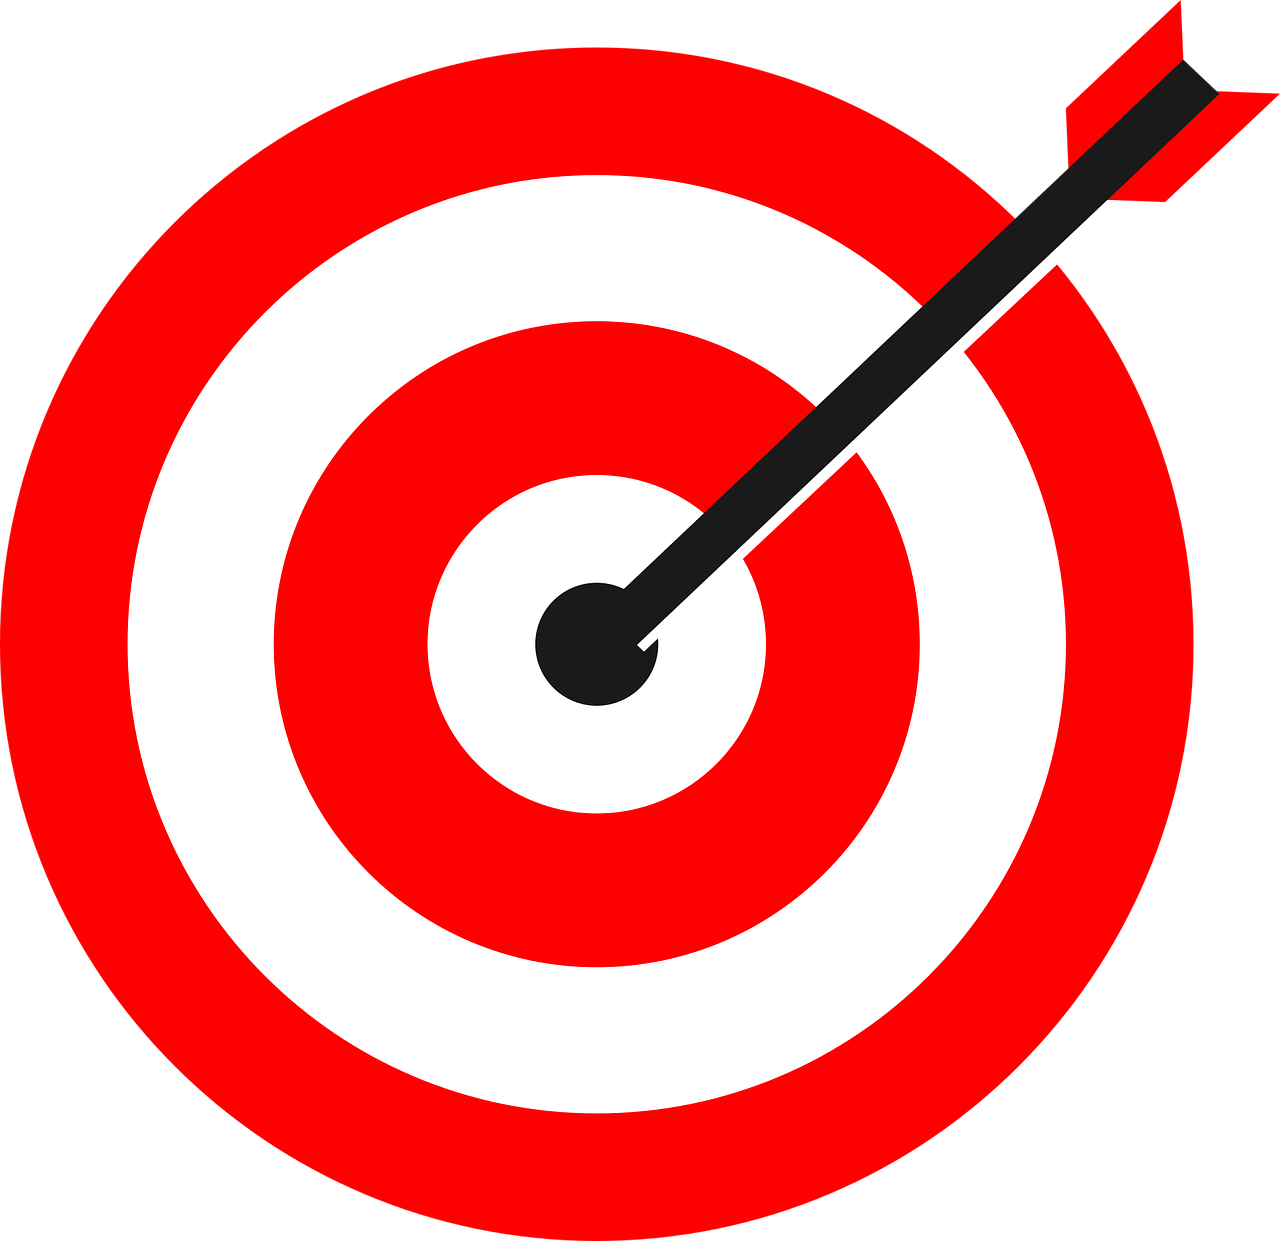 png freeuse download Bullseye clipart relevance. Demand local inc audience